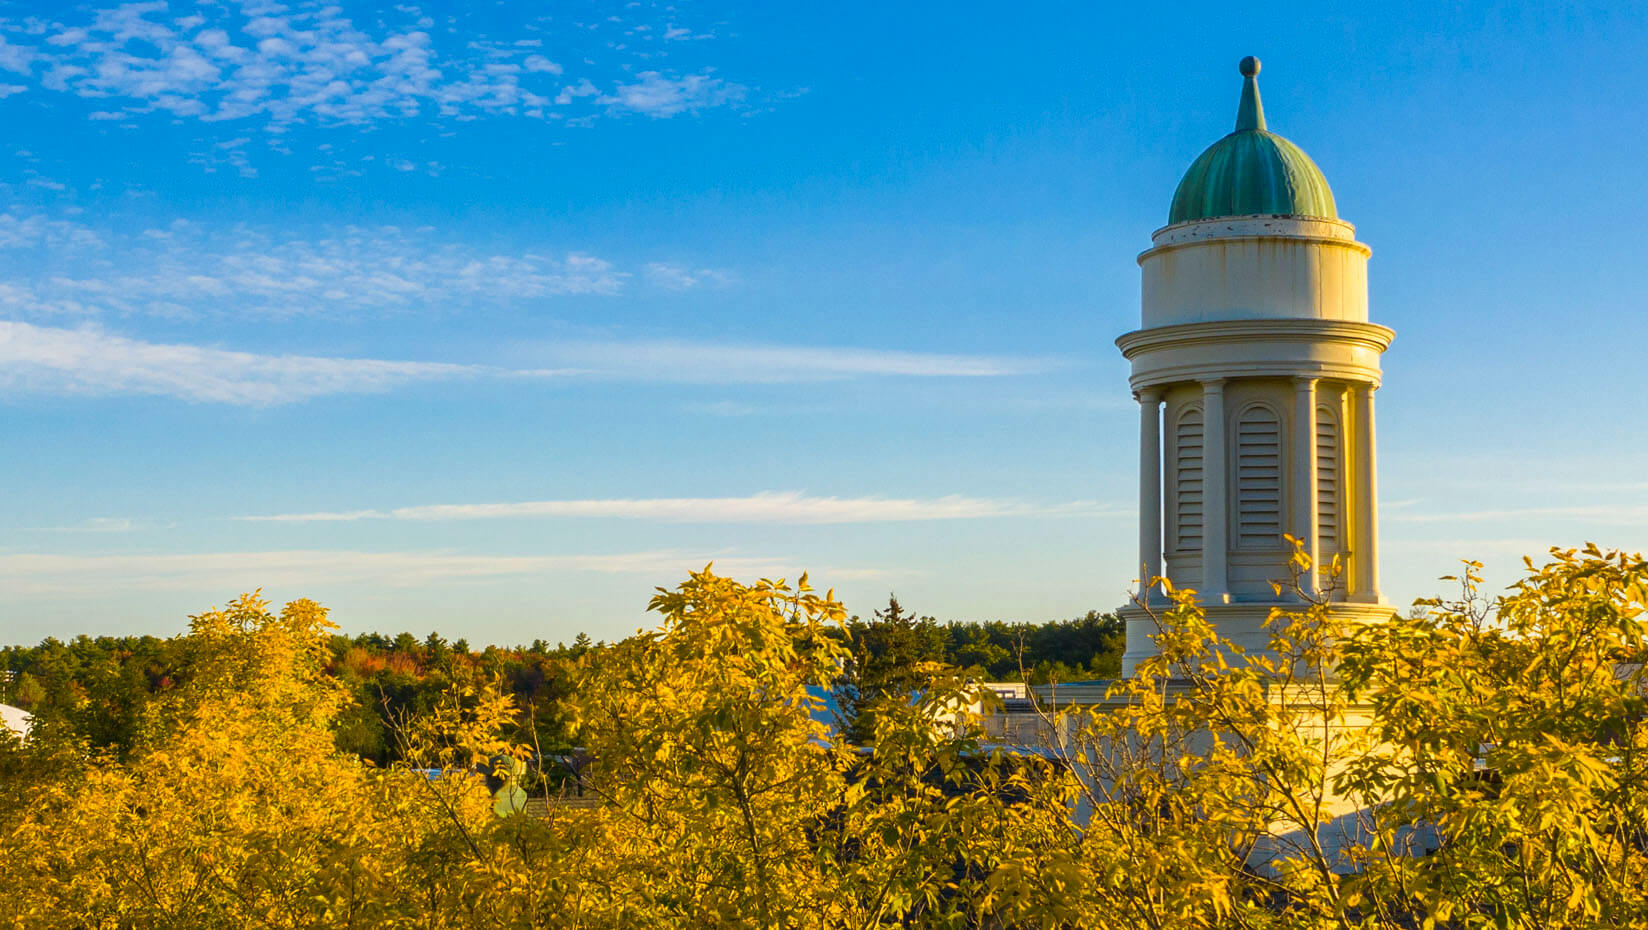 Treetop view of Stevens Hall cupola